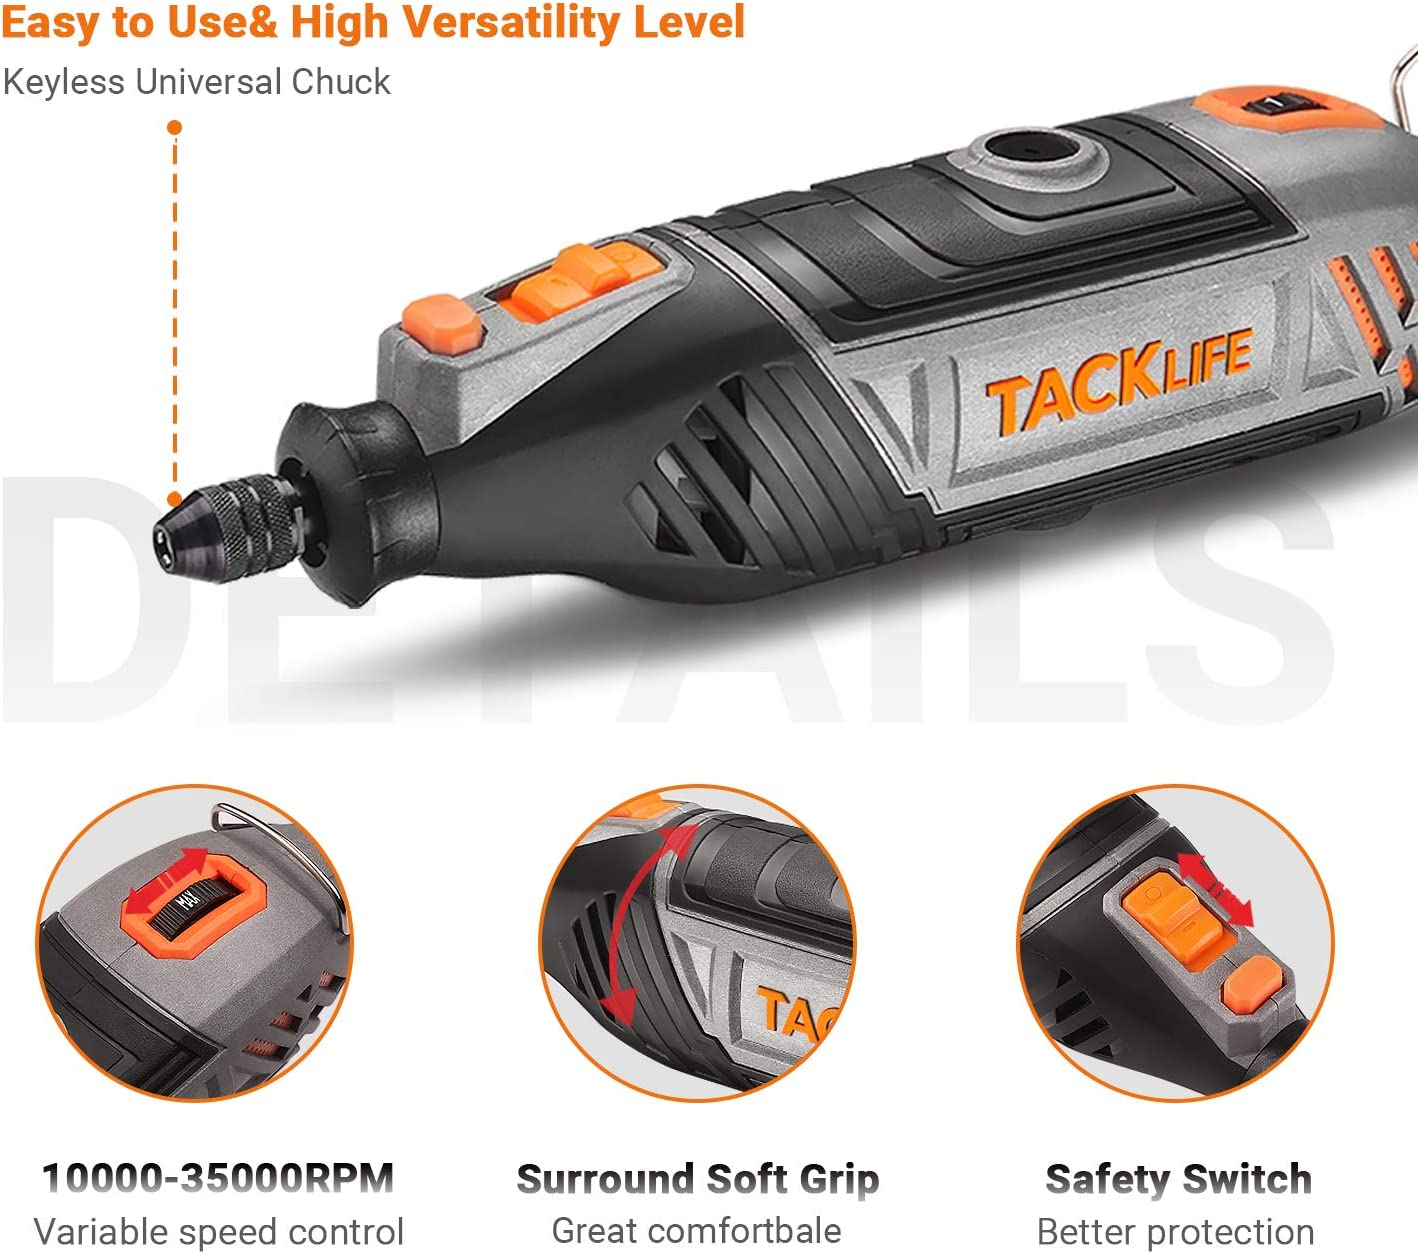 Variable Speed and Powerful Motor Perfect for Crafting and DIY Projects RTSL50AC TACKLIFE Rotary Tool Kit with MultiPro Keyless Chuck and 150 Pcs Accessories and Flex Shaft